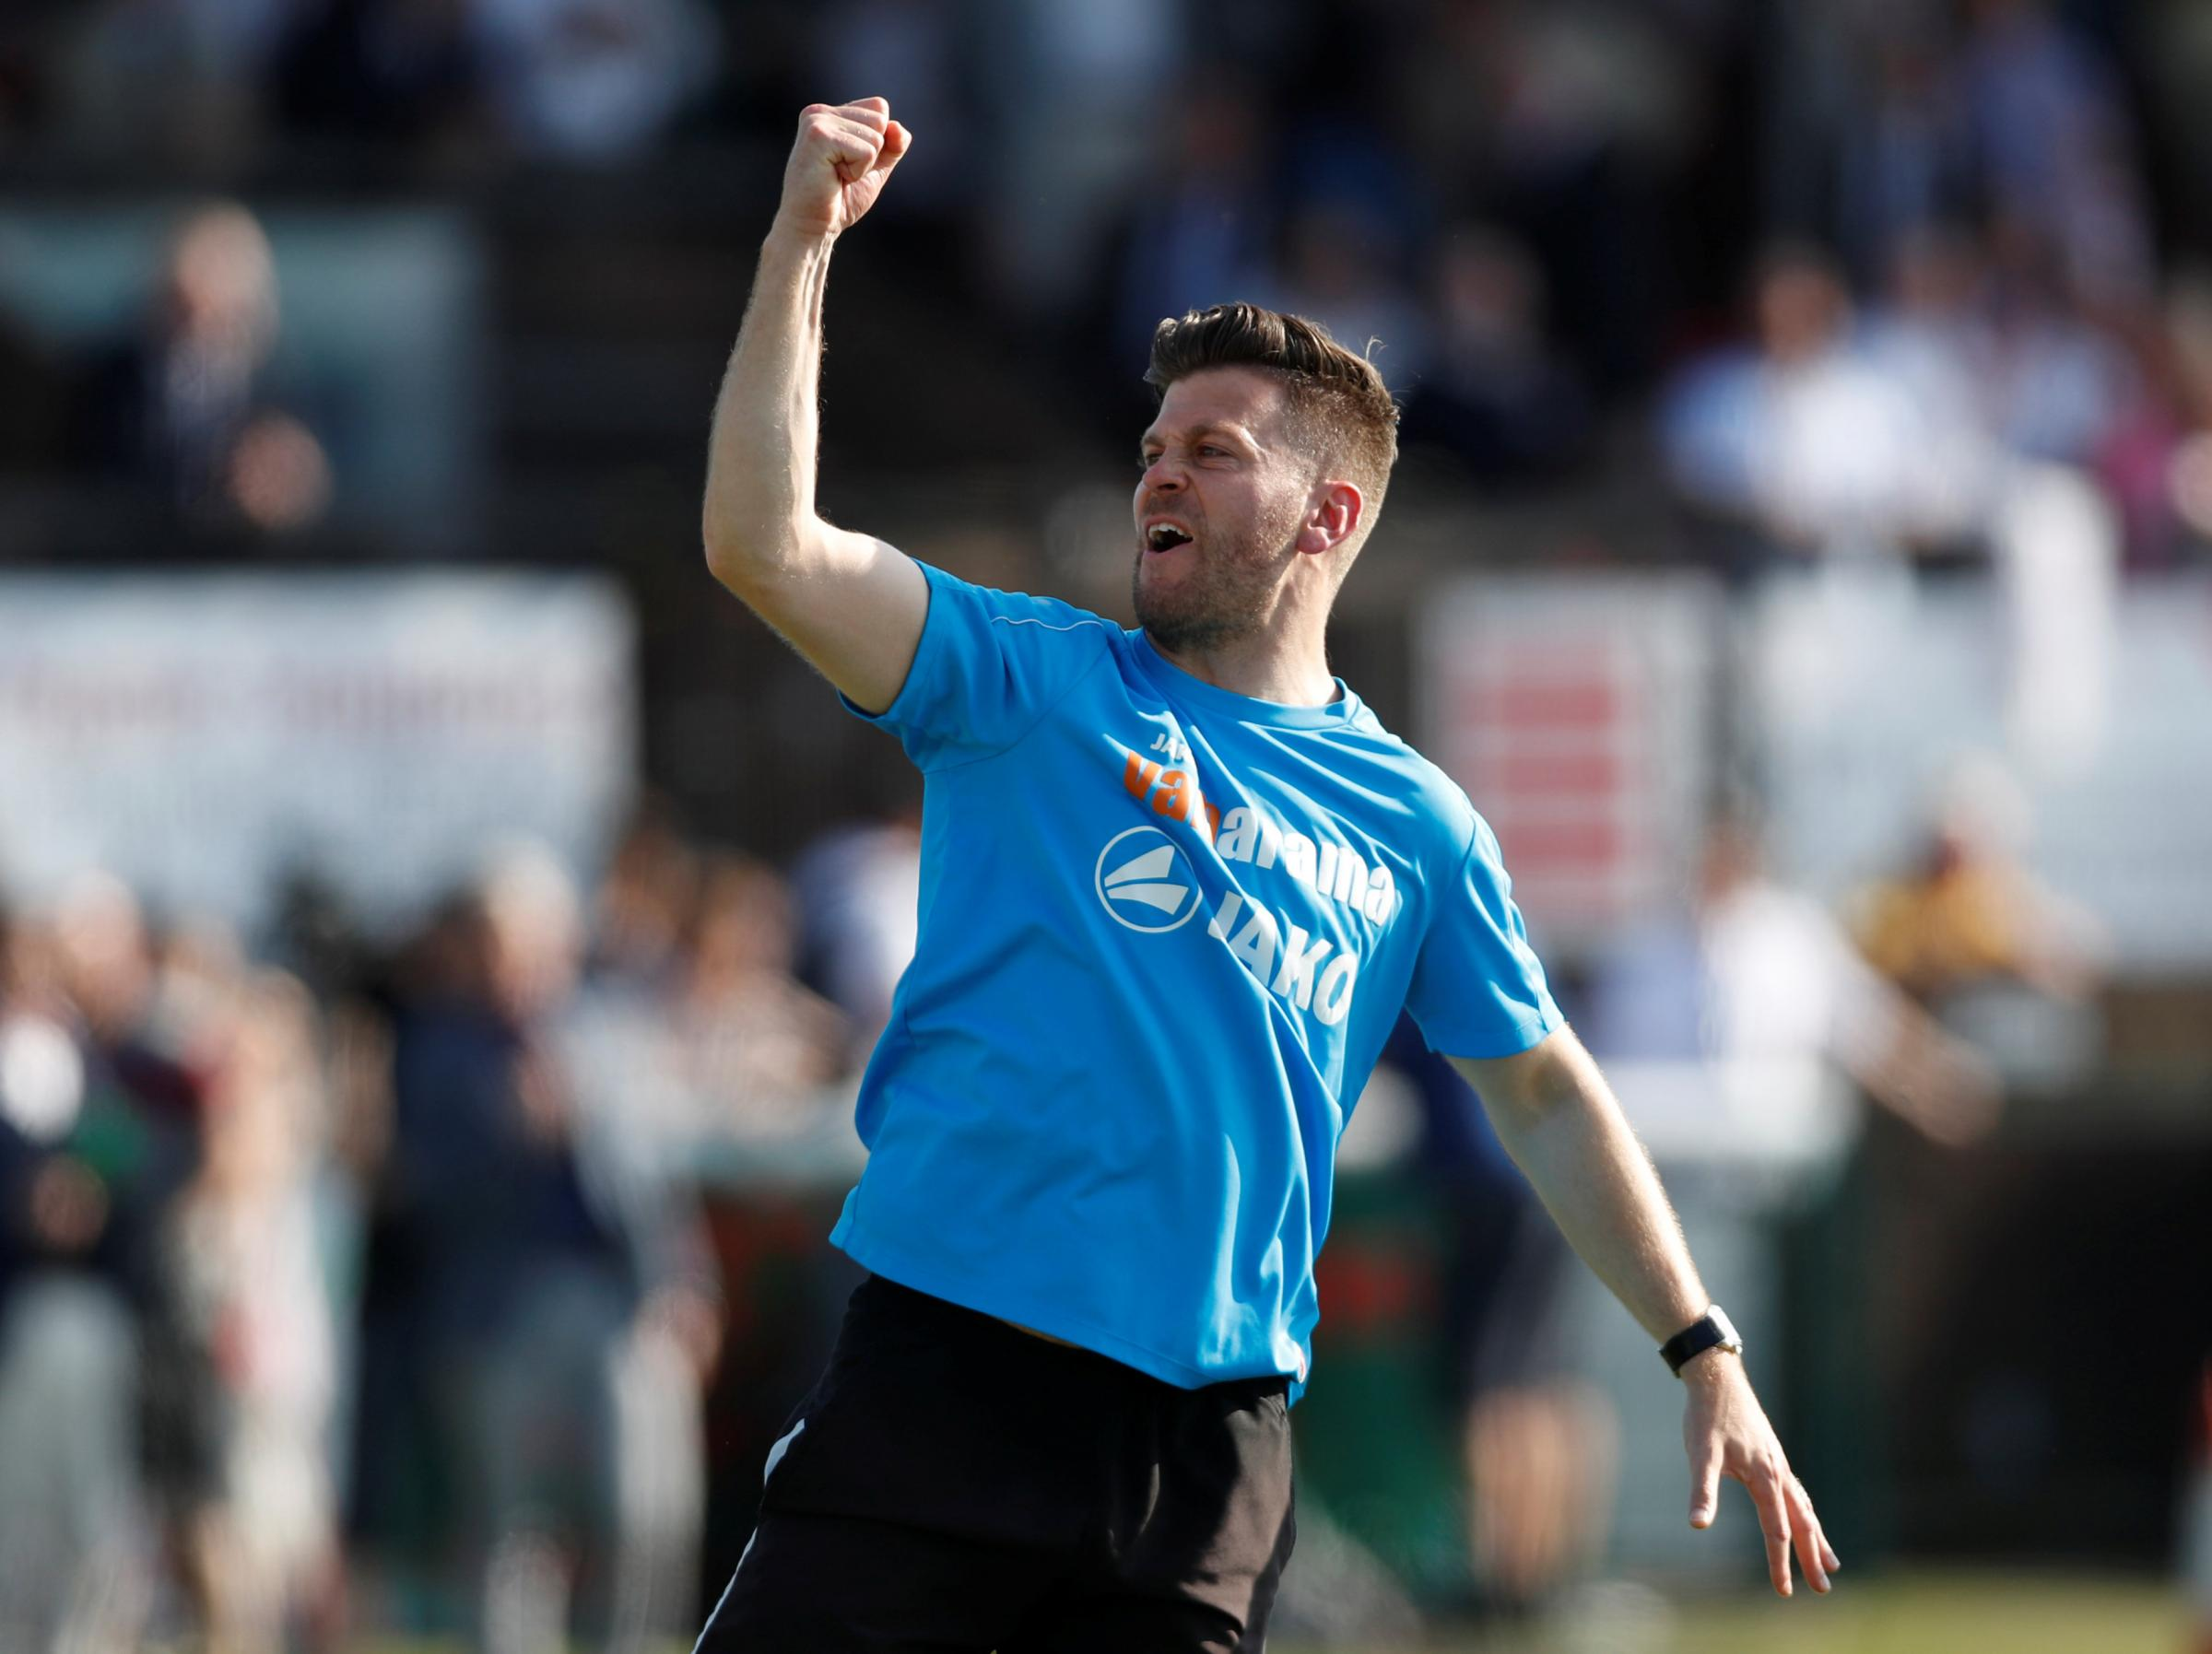 Luke Garrard has extended his Boreham Wood contract until 2021. Picture: Action Images